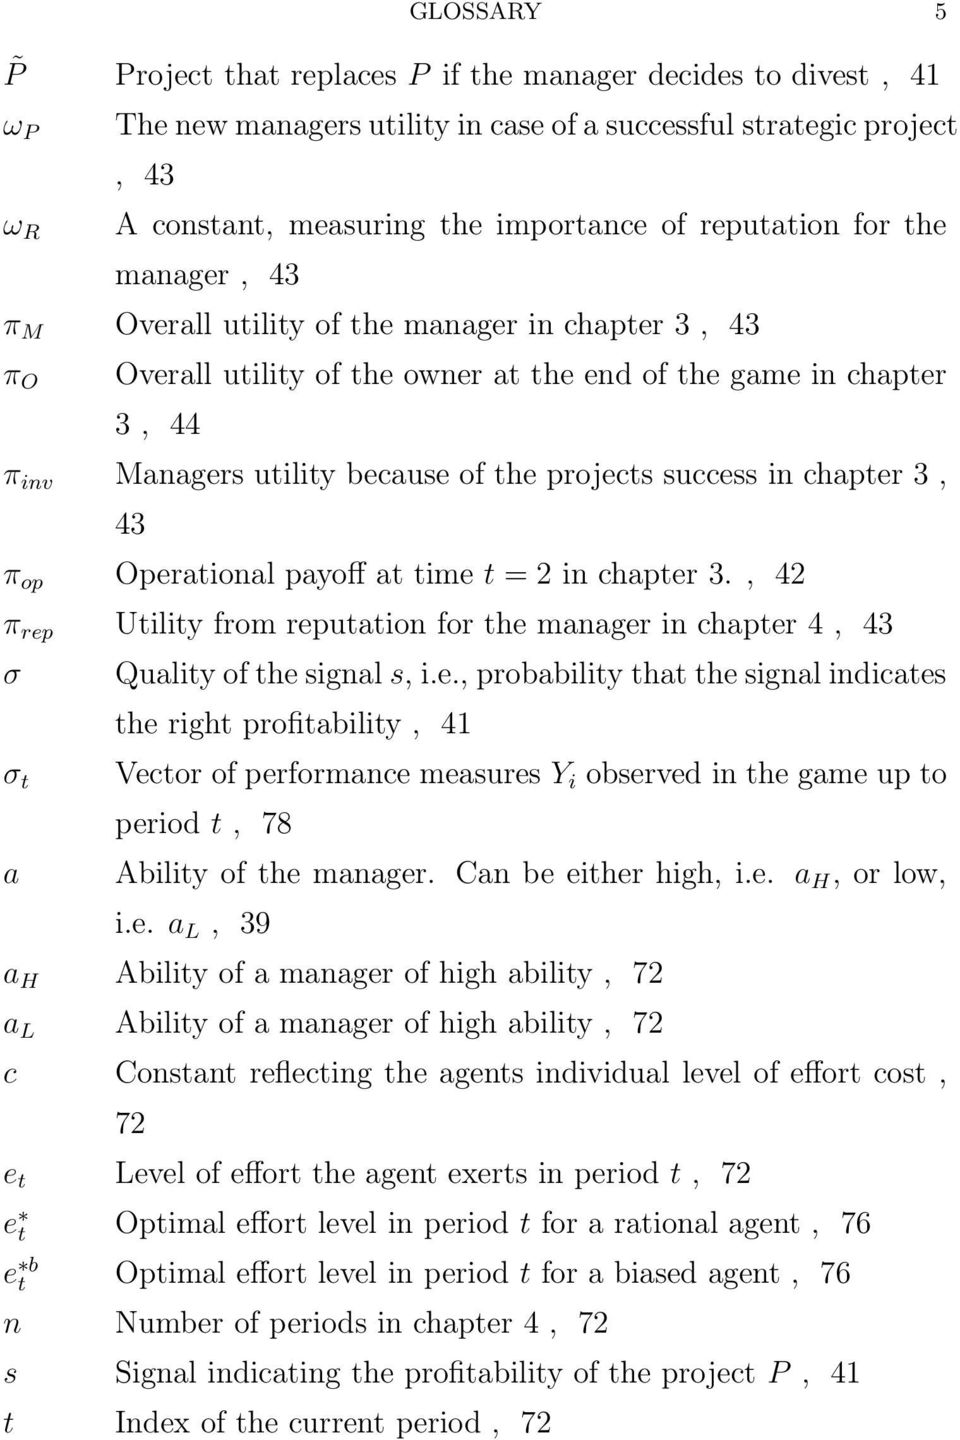 projects success in chapter 3, 43 π op Operational payoff at time t = 2 in chapter 3., 42 π rep Utility from reputation for the manager in chapter 4, 43 σ σ t a Quality of the signal s, i.e., probability that the signal indicates the right profitability, 41 Vector of performance measures Y i observed in the game up to period t, 78 Ability of the manager.